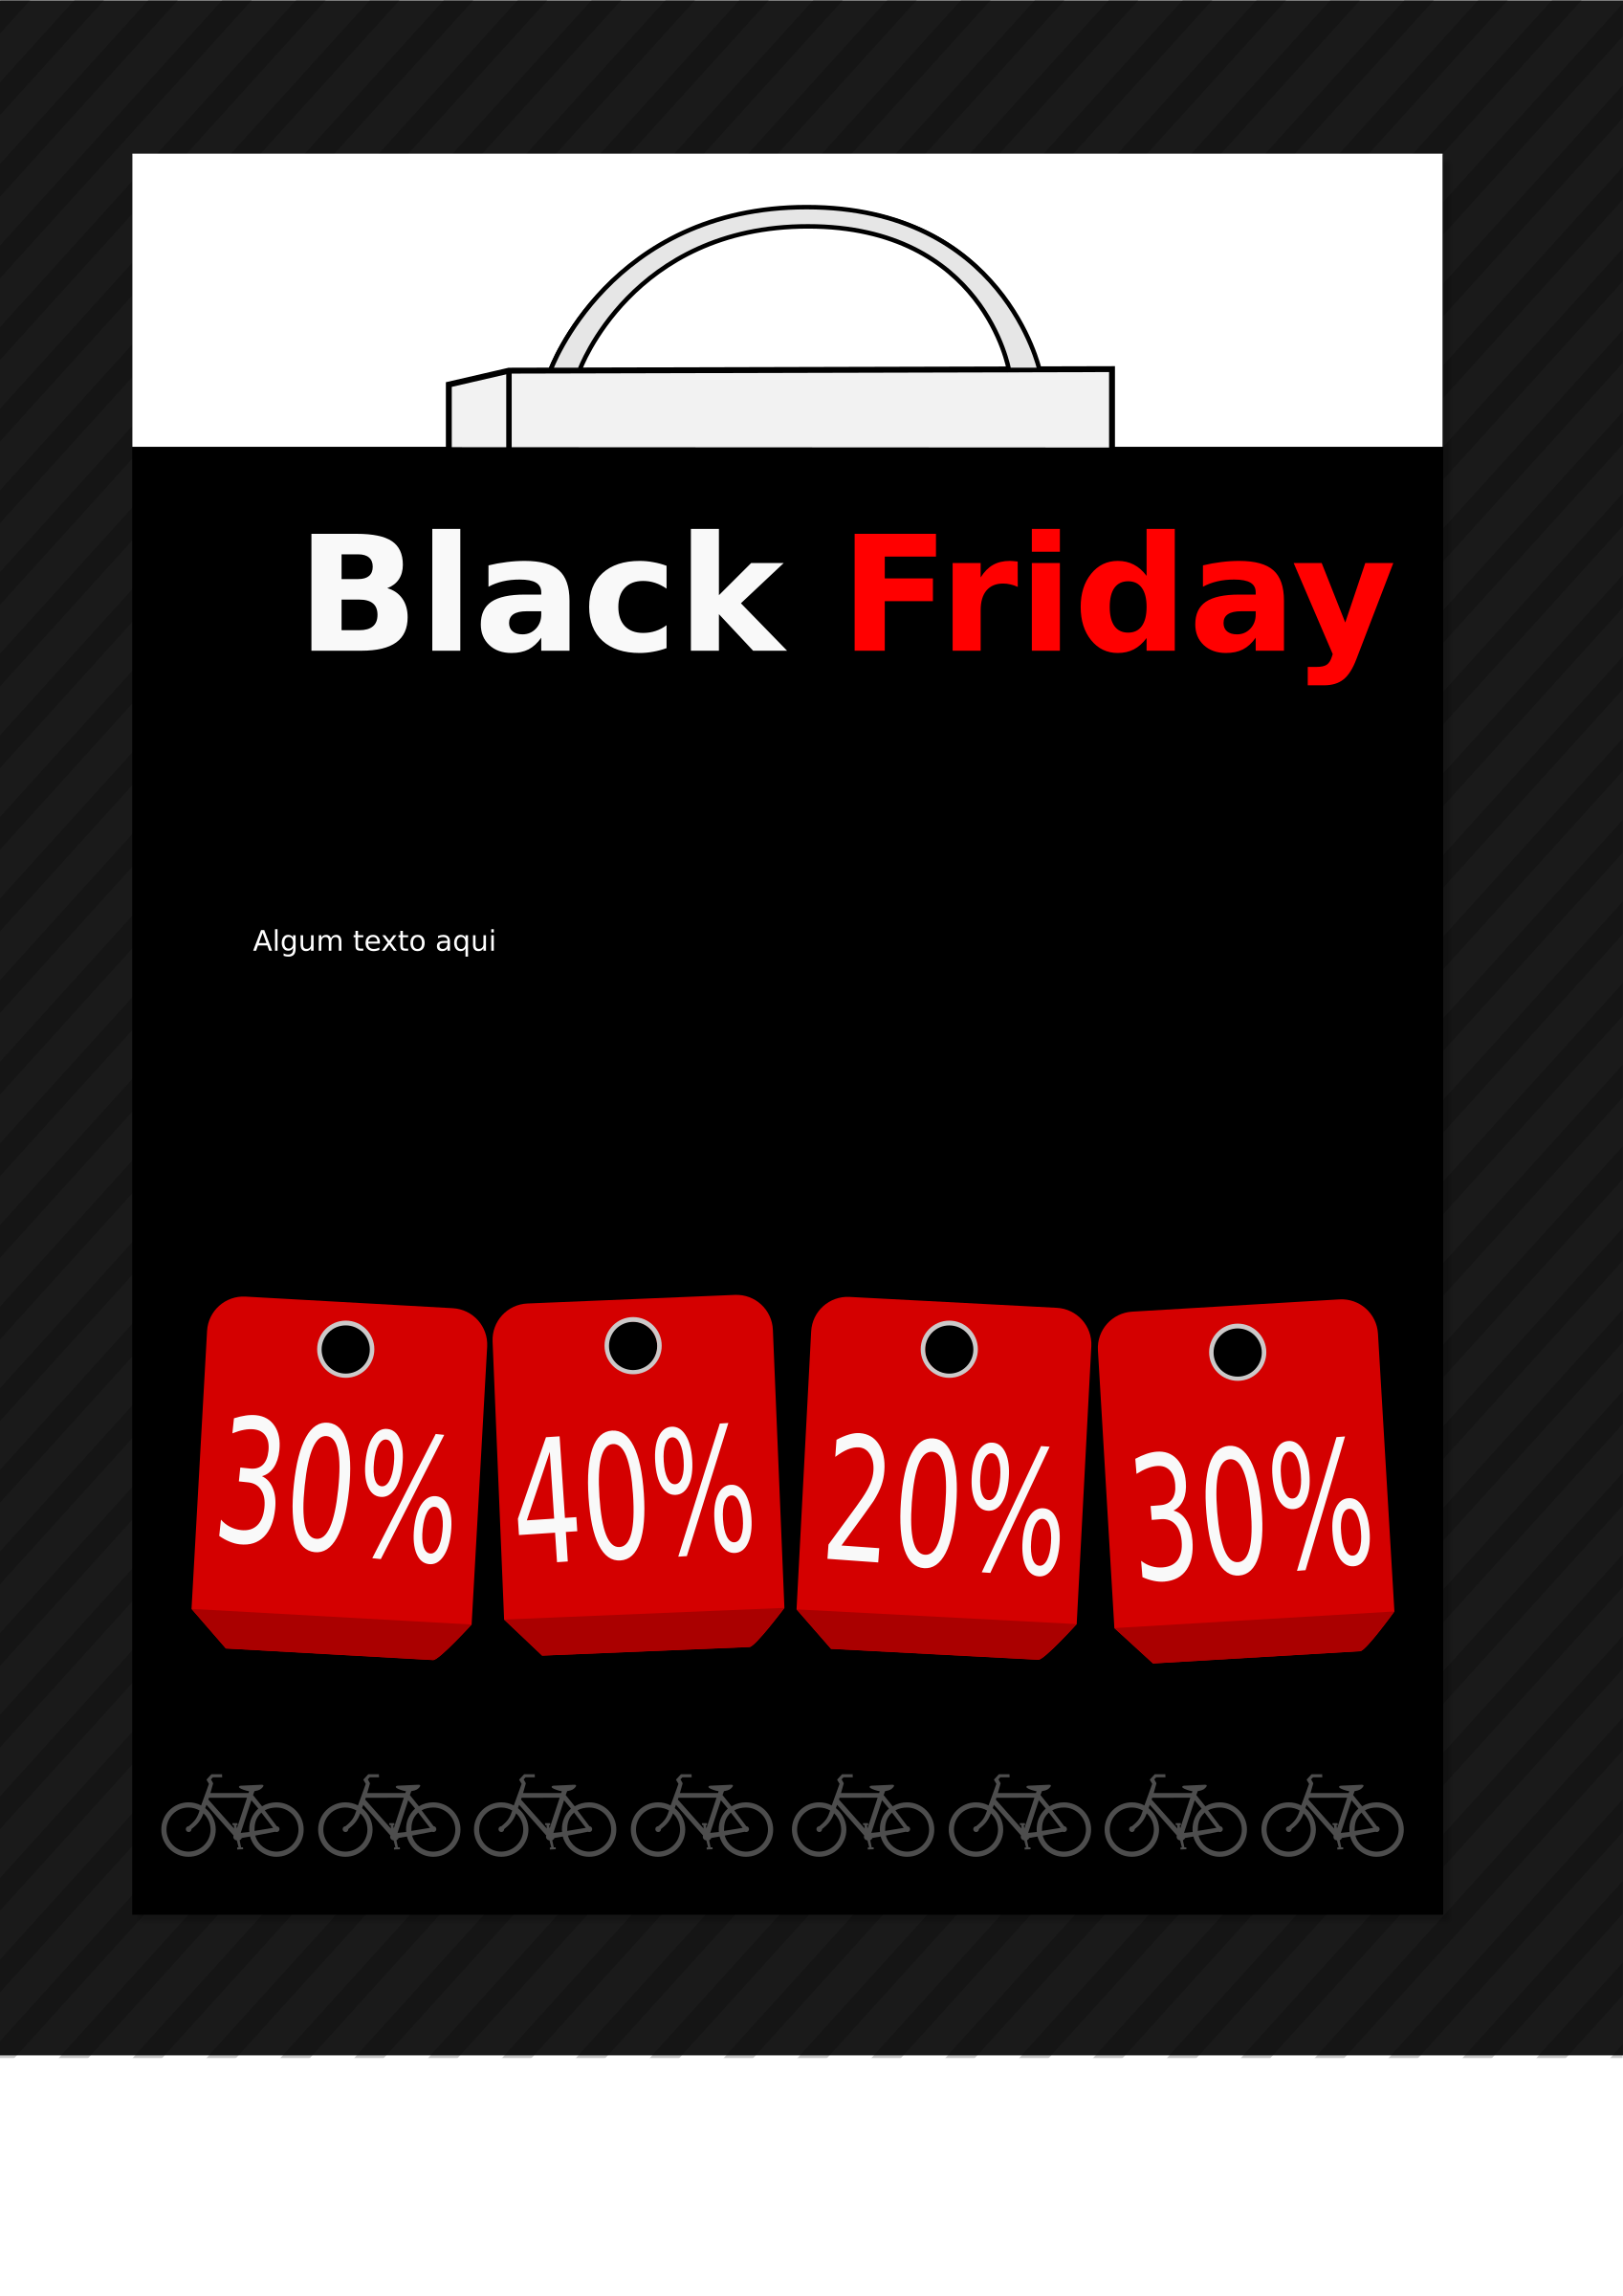 Black Friday Template - Banner by eduardunix